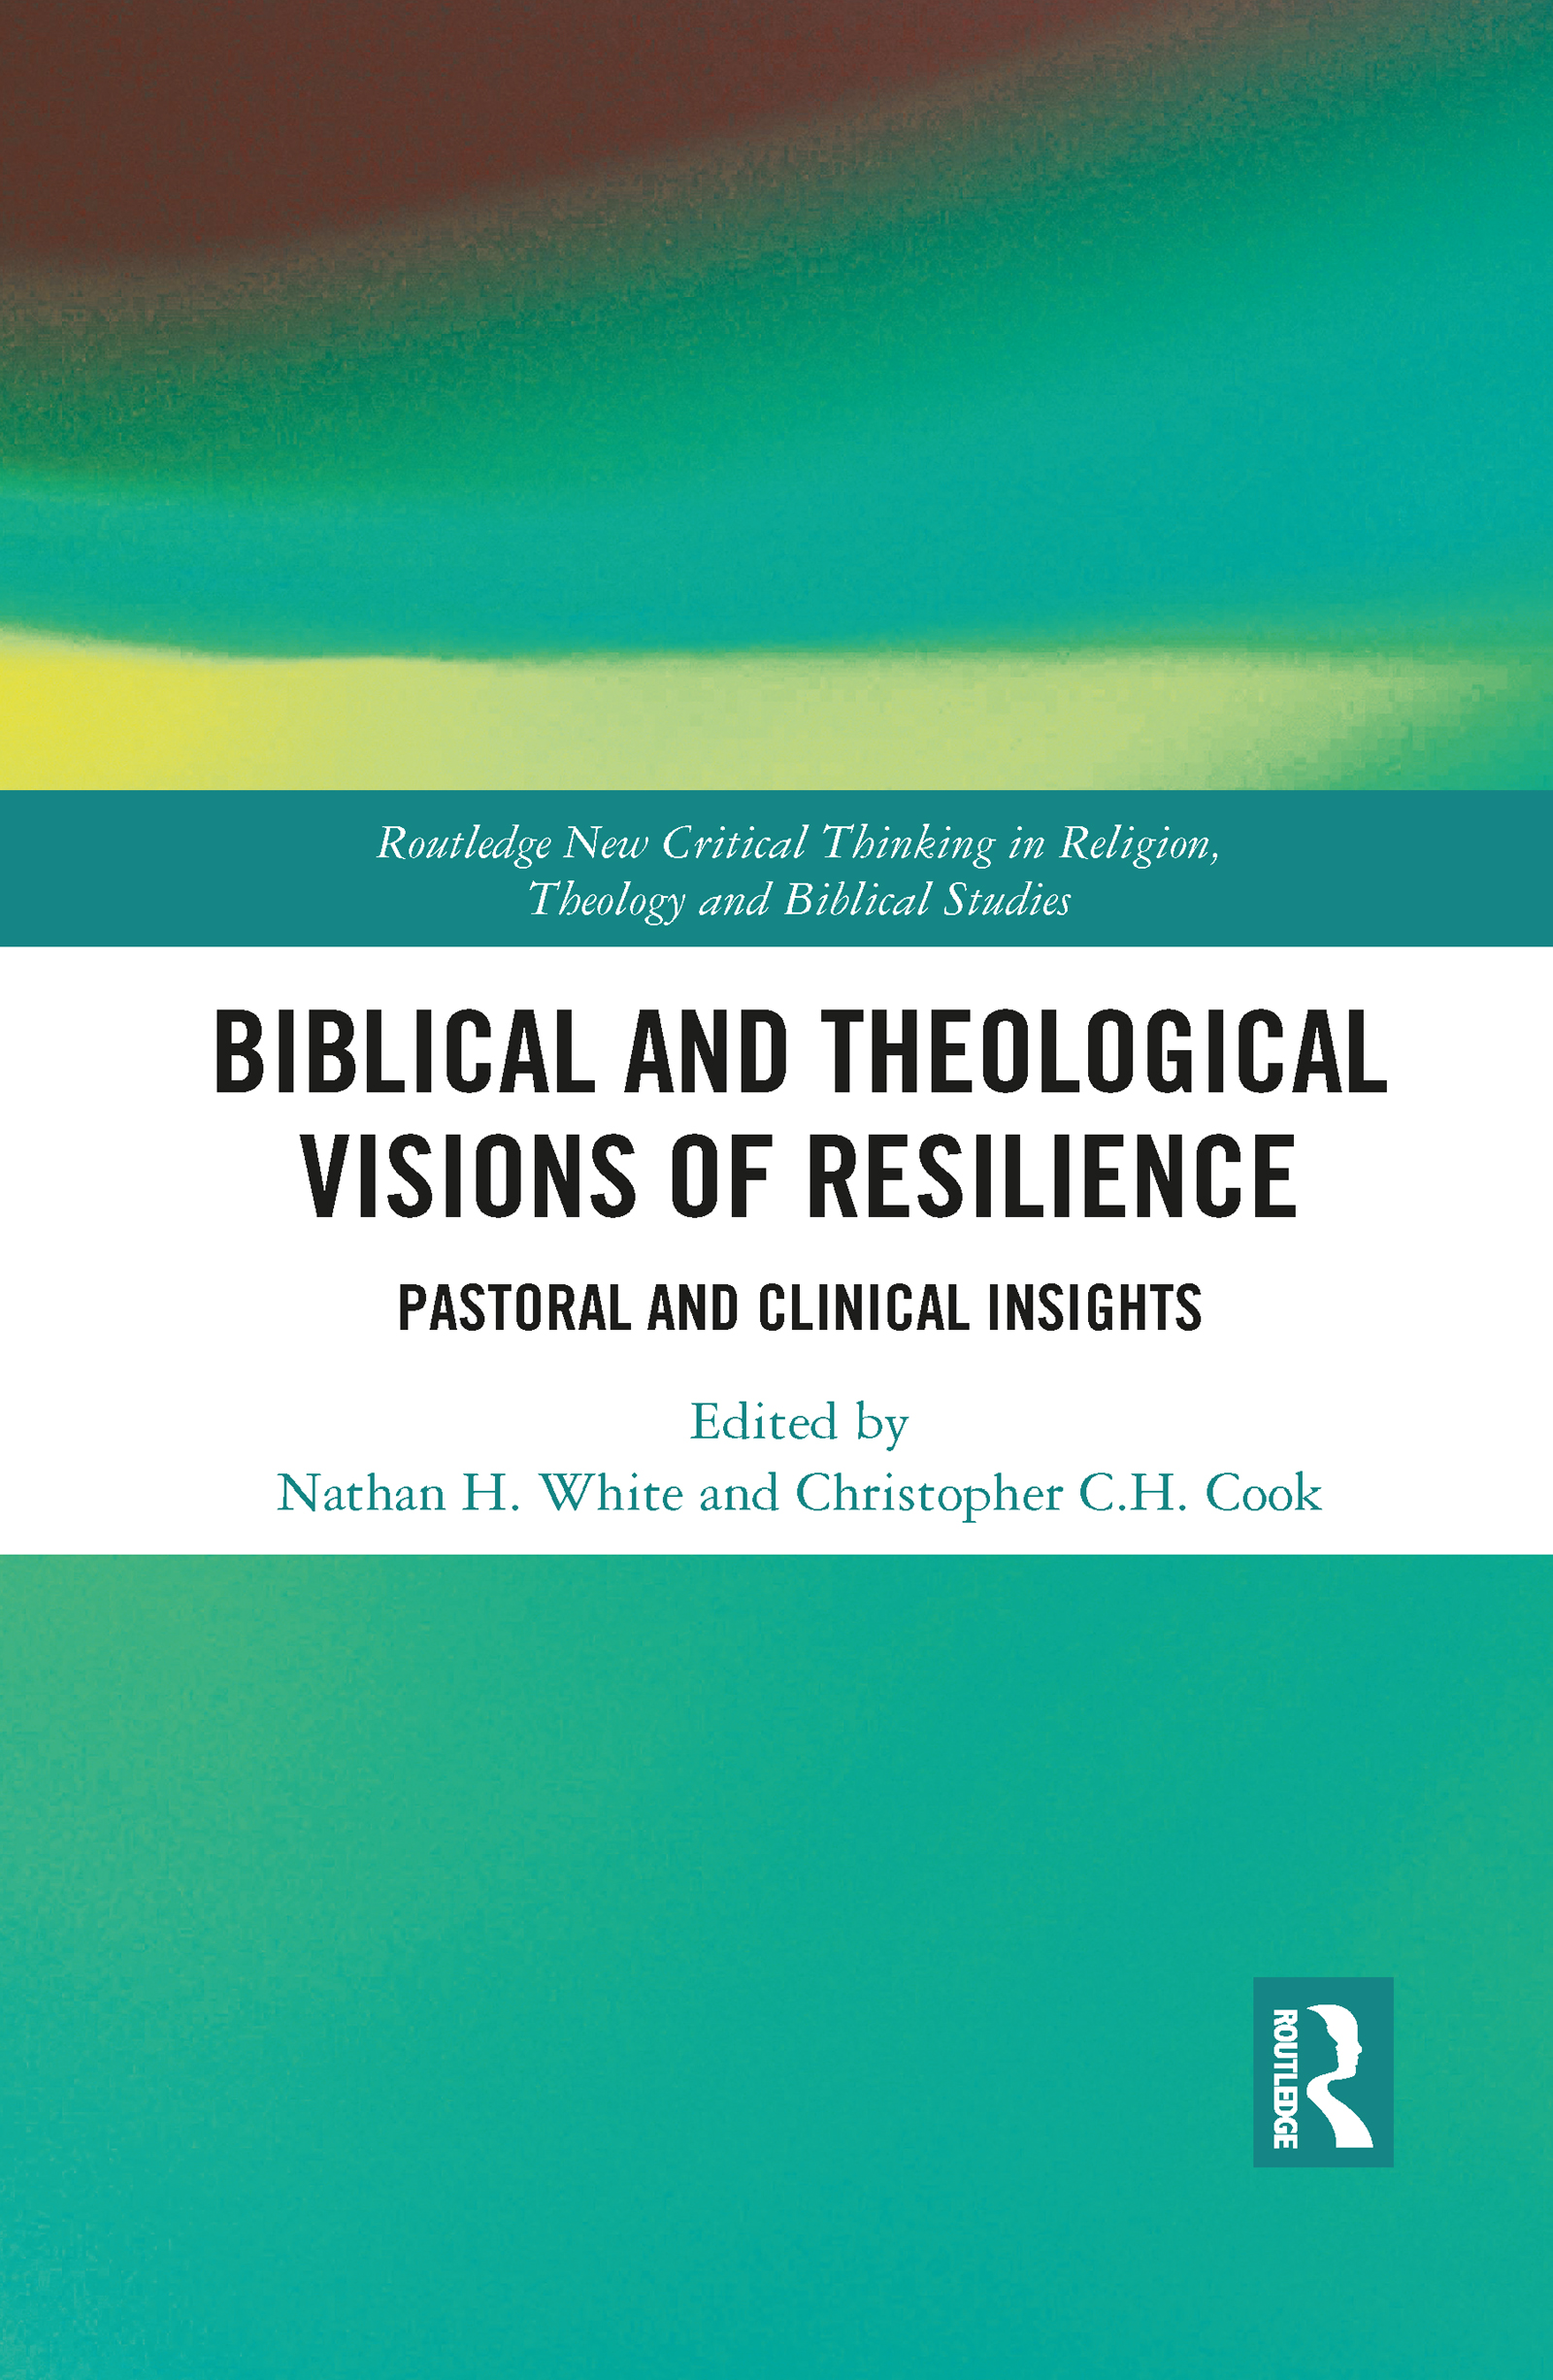 Biblical and Theological Visions of Resilience